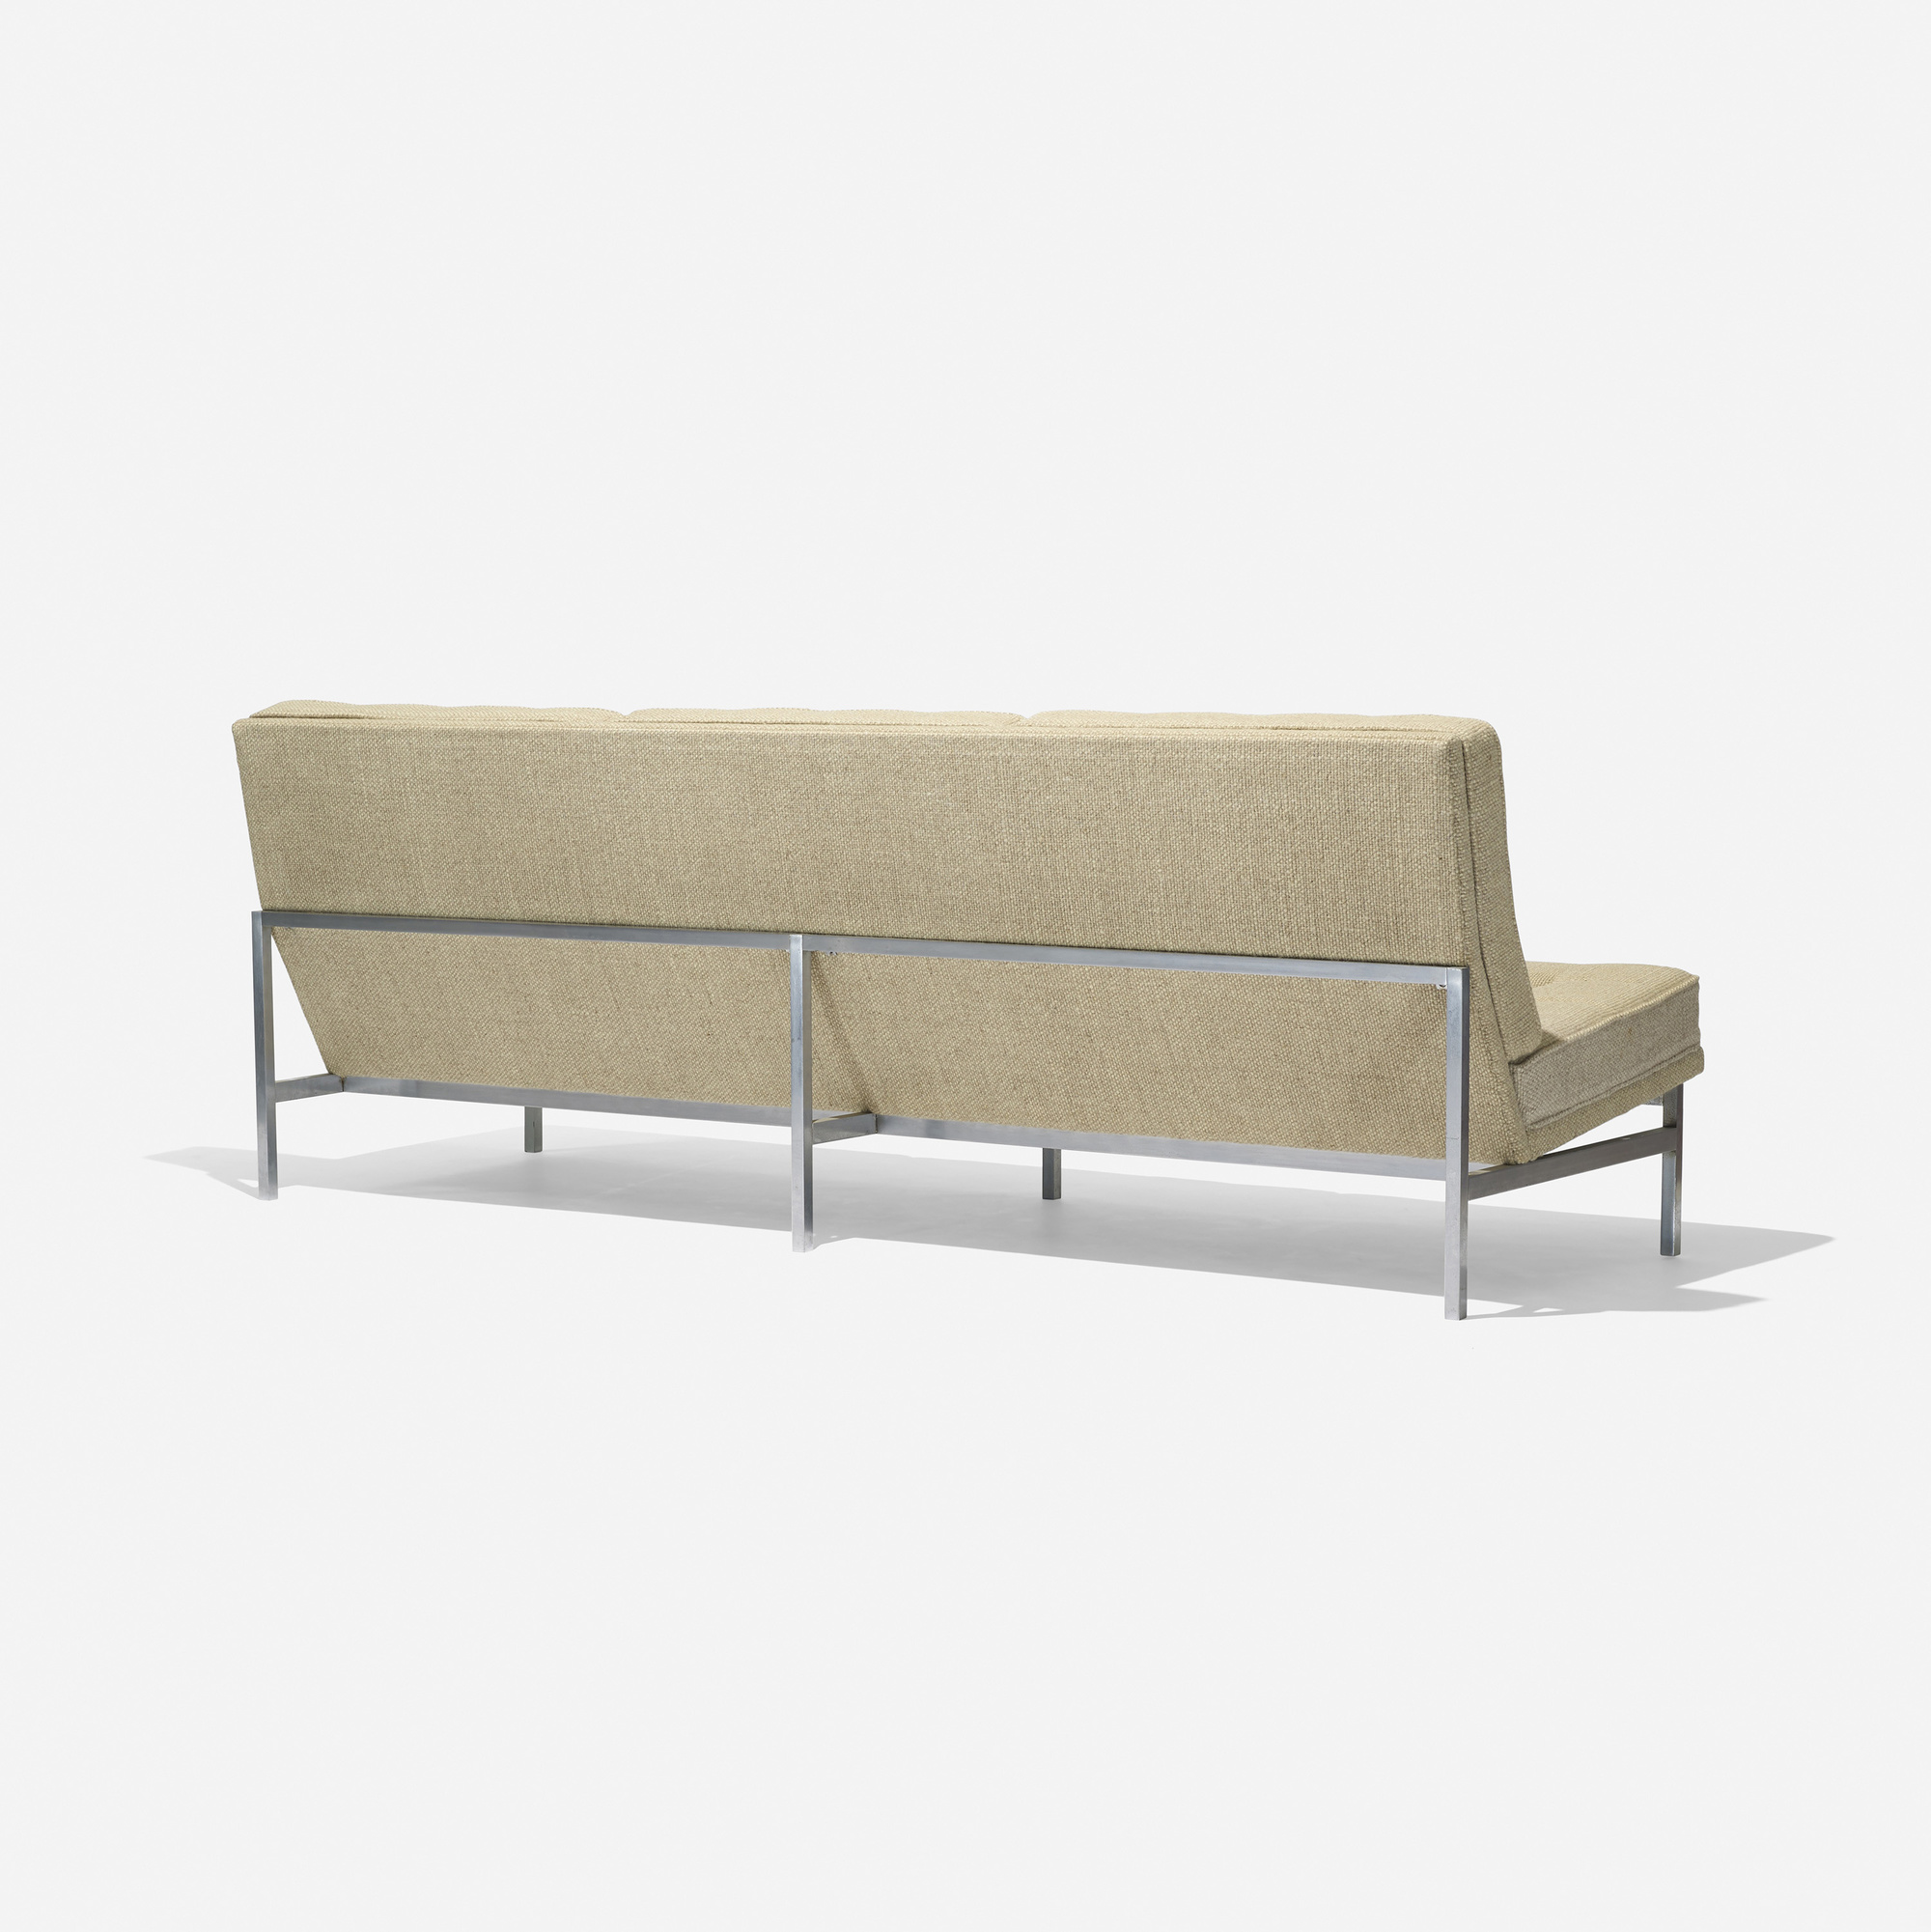 341 Florence Knoll Sofa Model 2551 2 Of 3